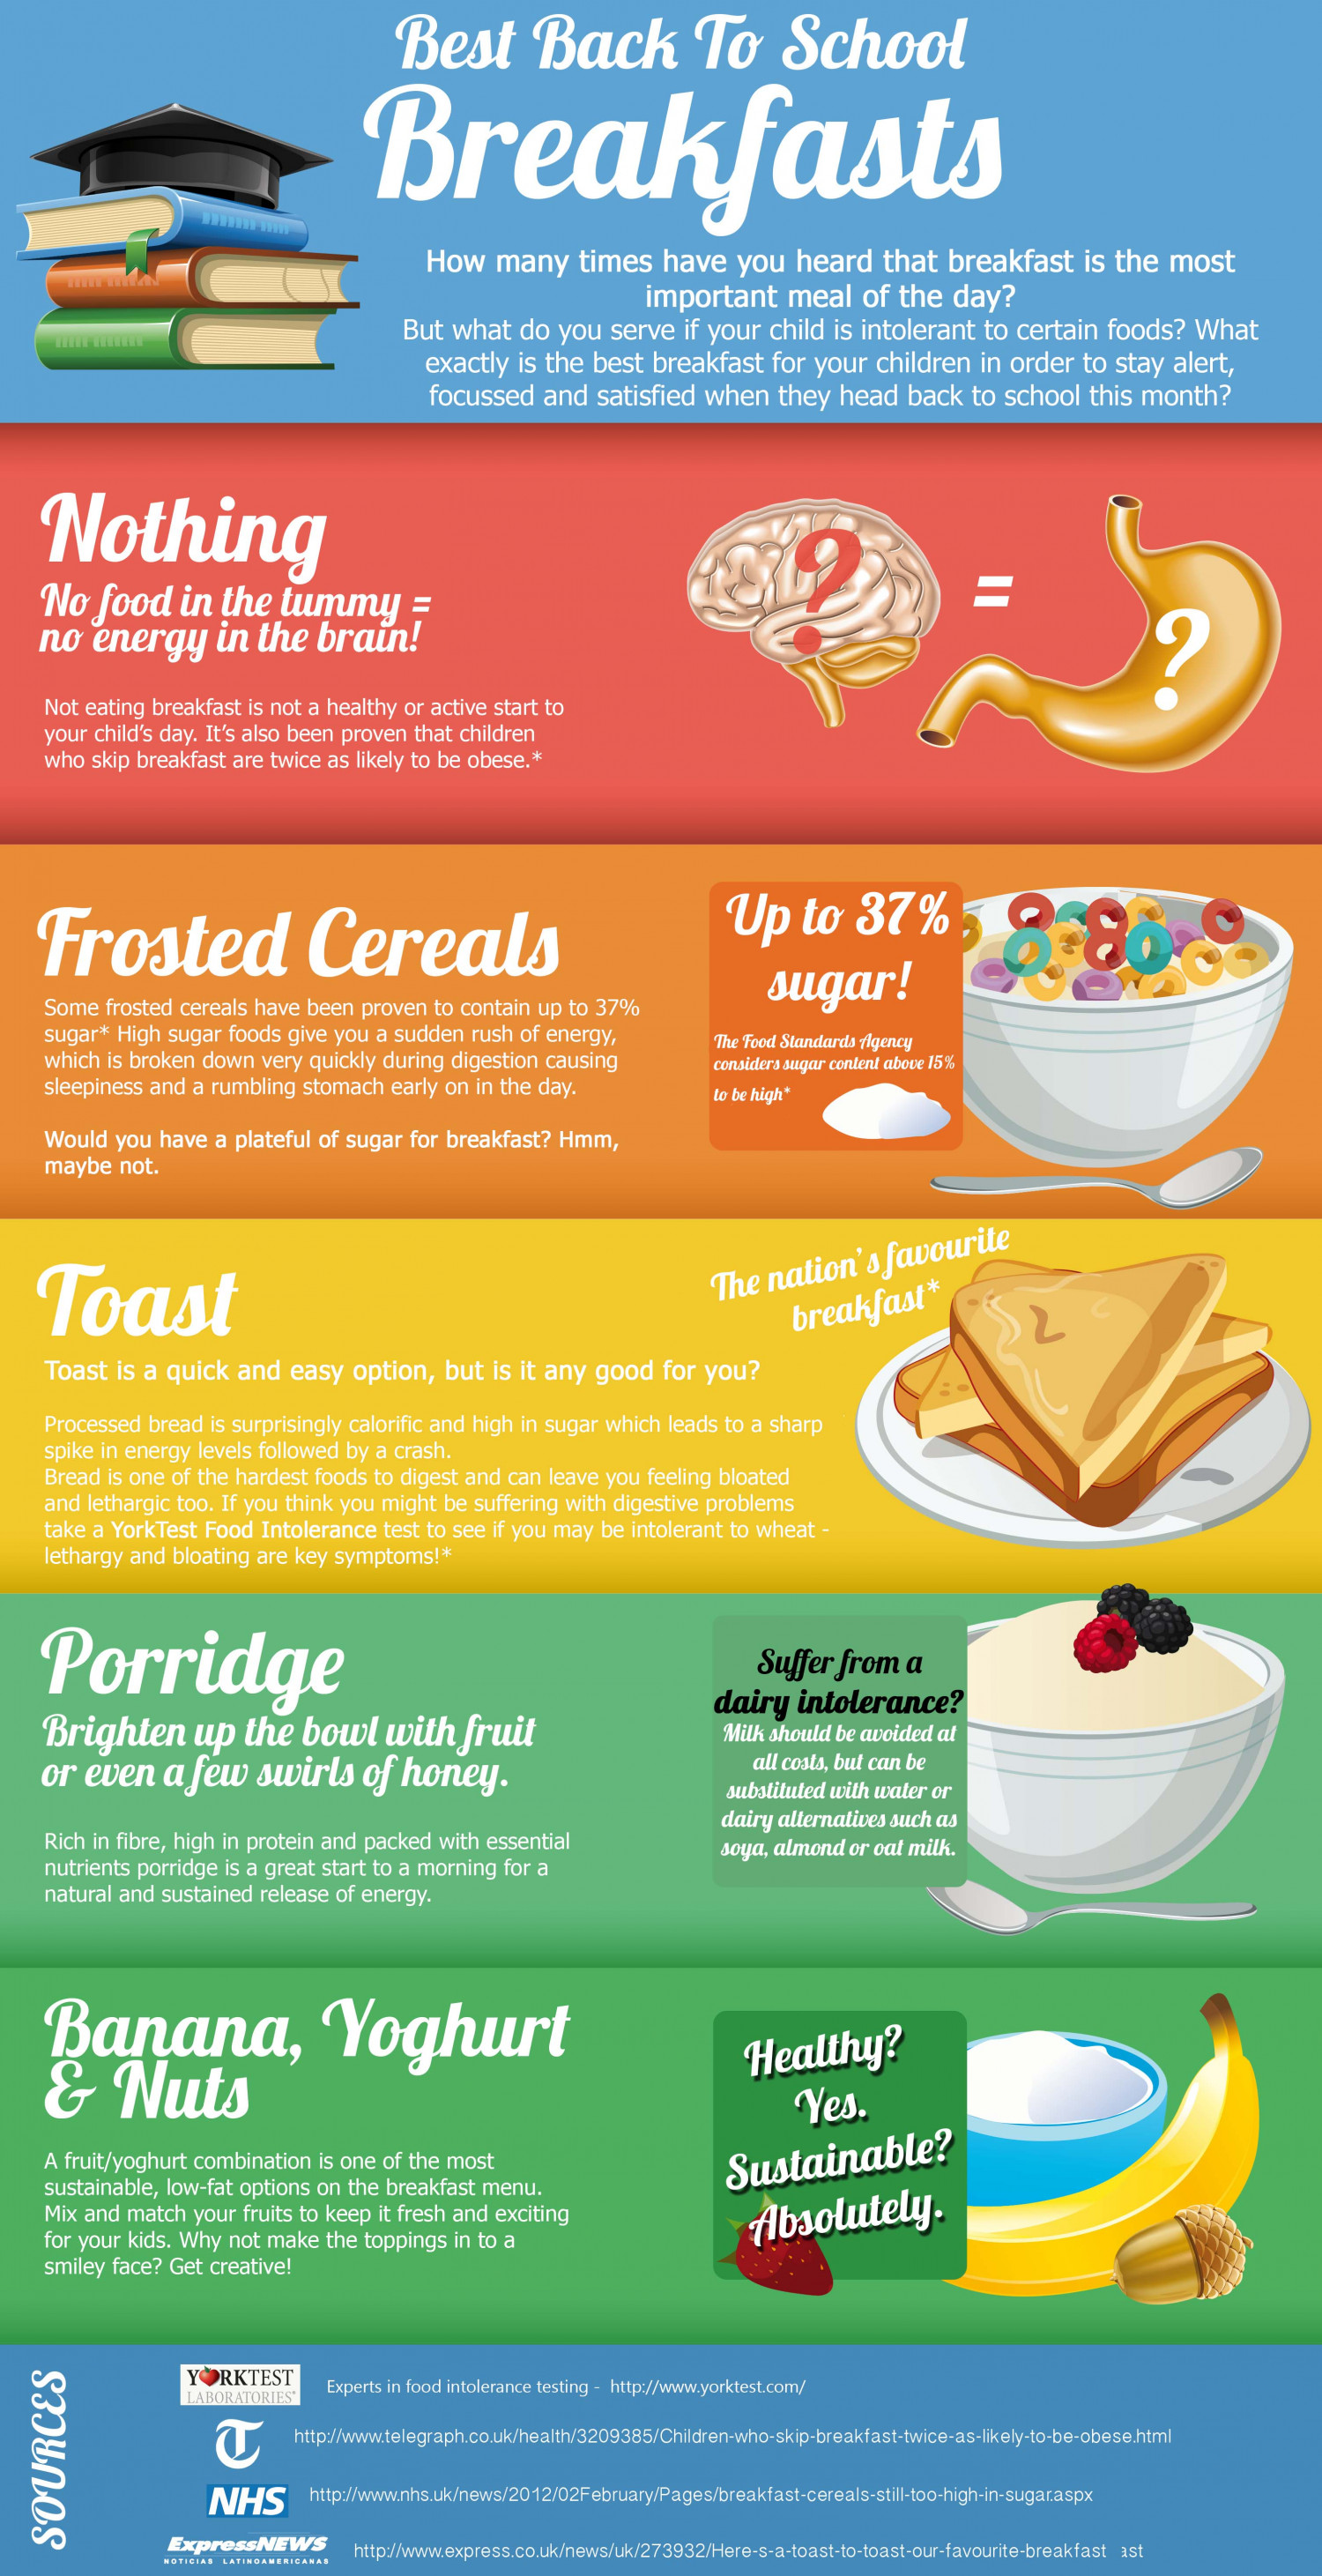 Best Back to School Breakfasts Infographic